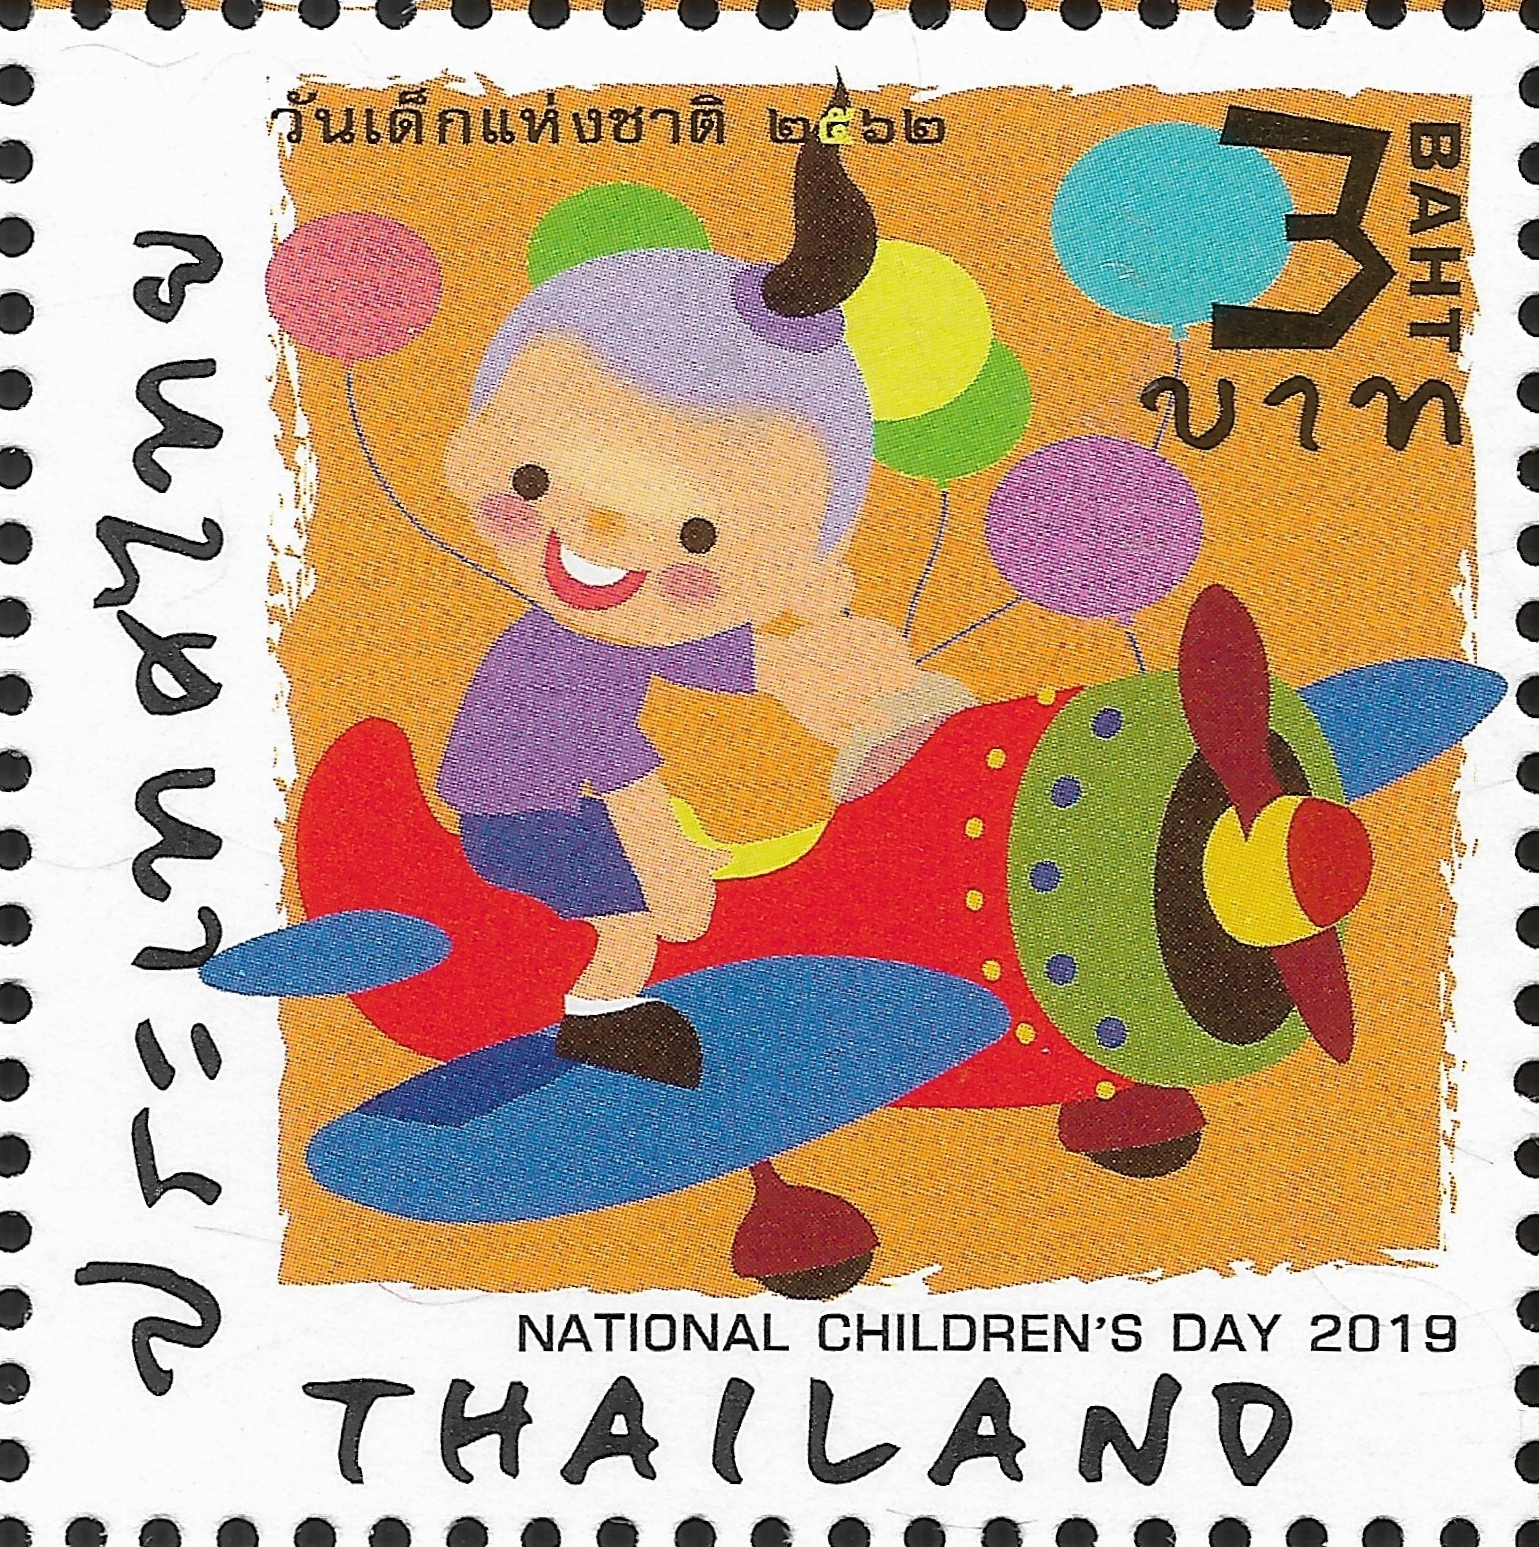 Thailand - Thailand Post #TH-1163 design 3 (January 12, 2019)